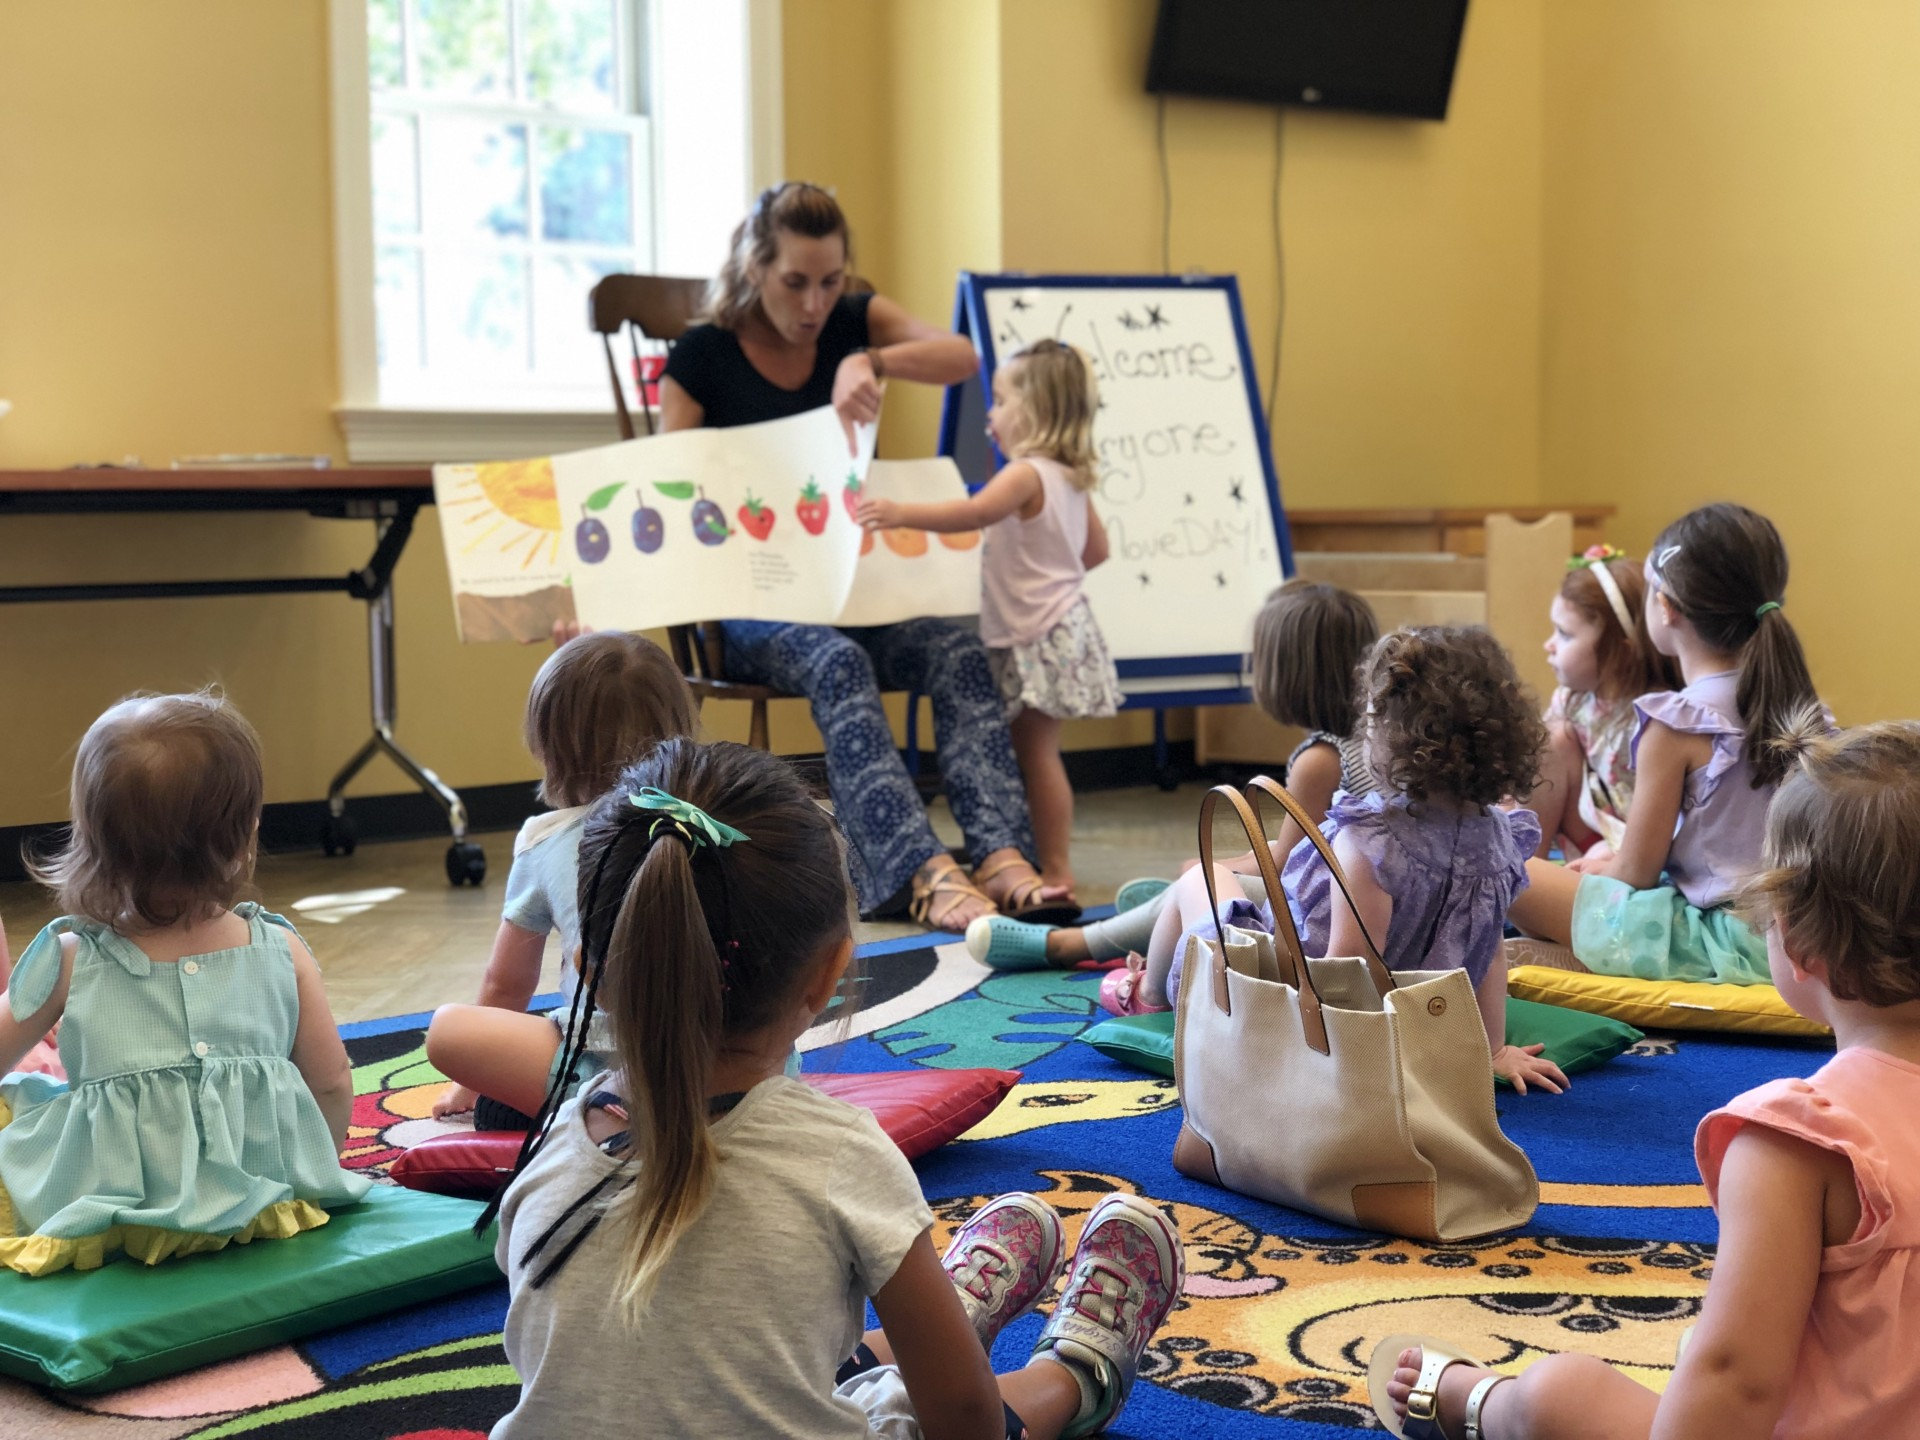 Join us for our Storytimes!  Toddlers & Tykes at 10:30am every Thursday.  Wiggles & Giggles 10.30am every Friday.